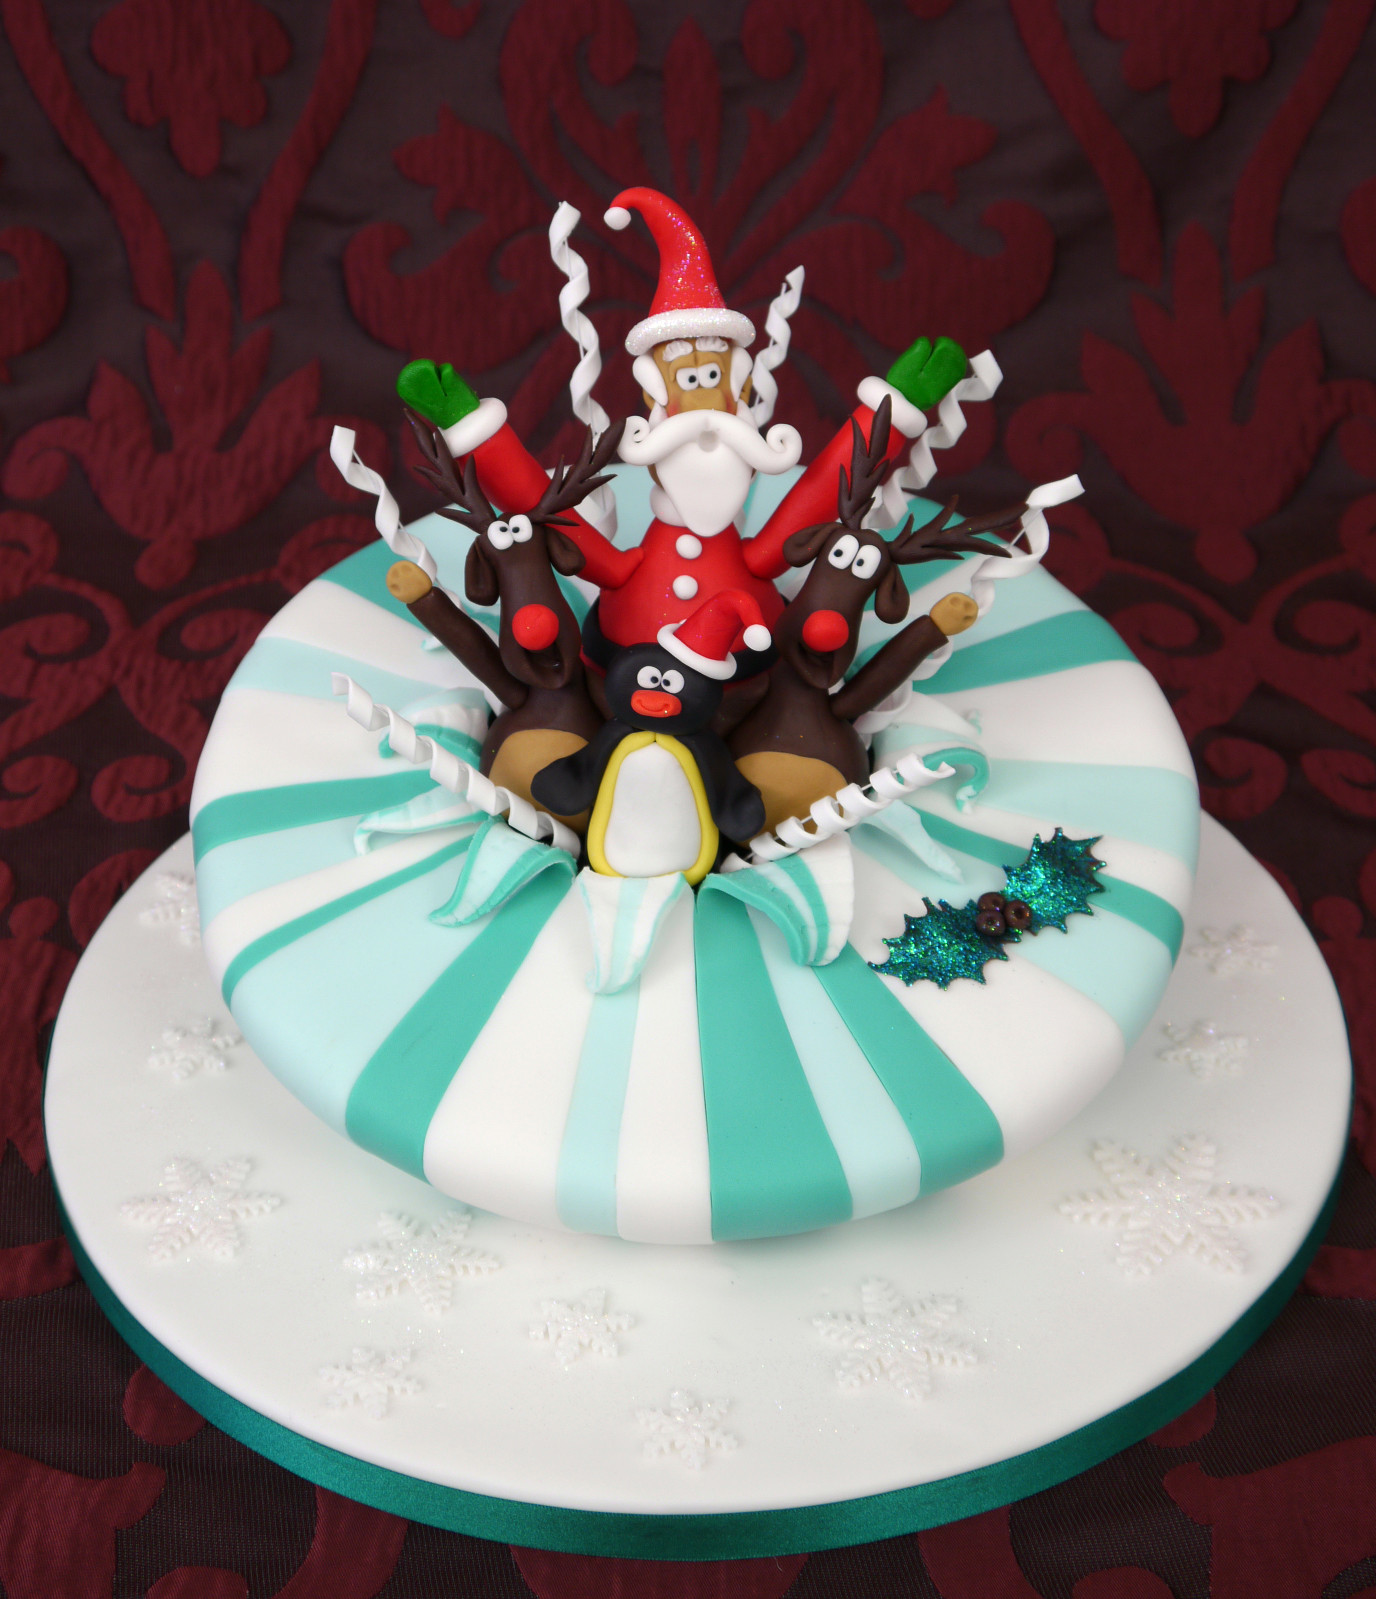 Cakes For Christmas  20 Delicious Christmas Cakes ideas 2018 Best Holiday Cake